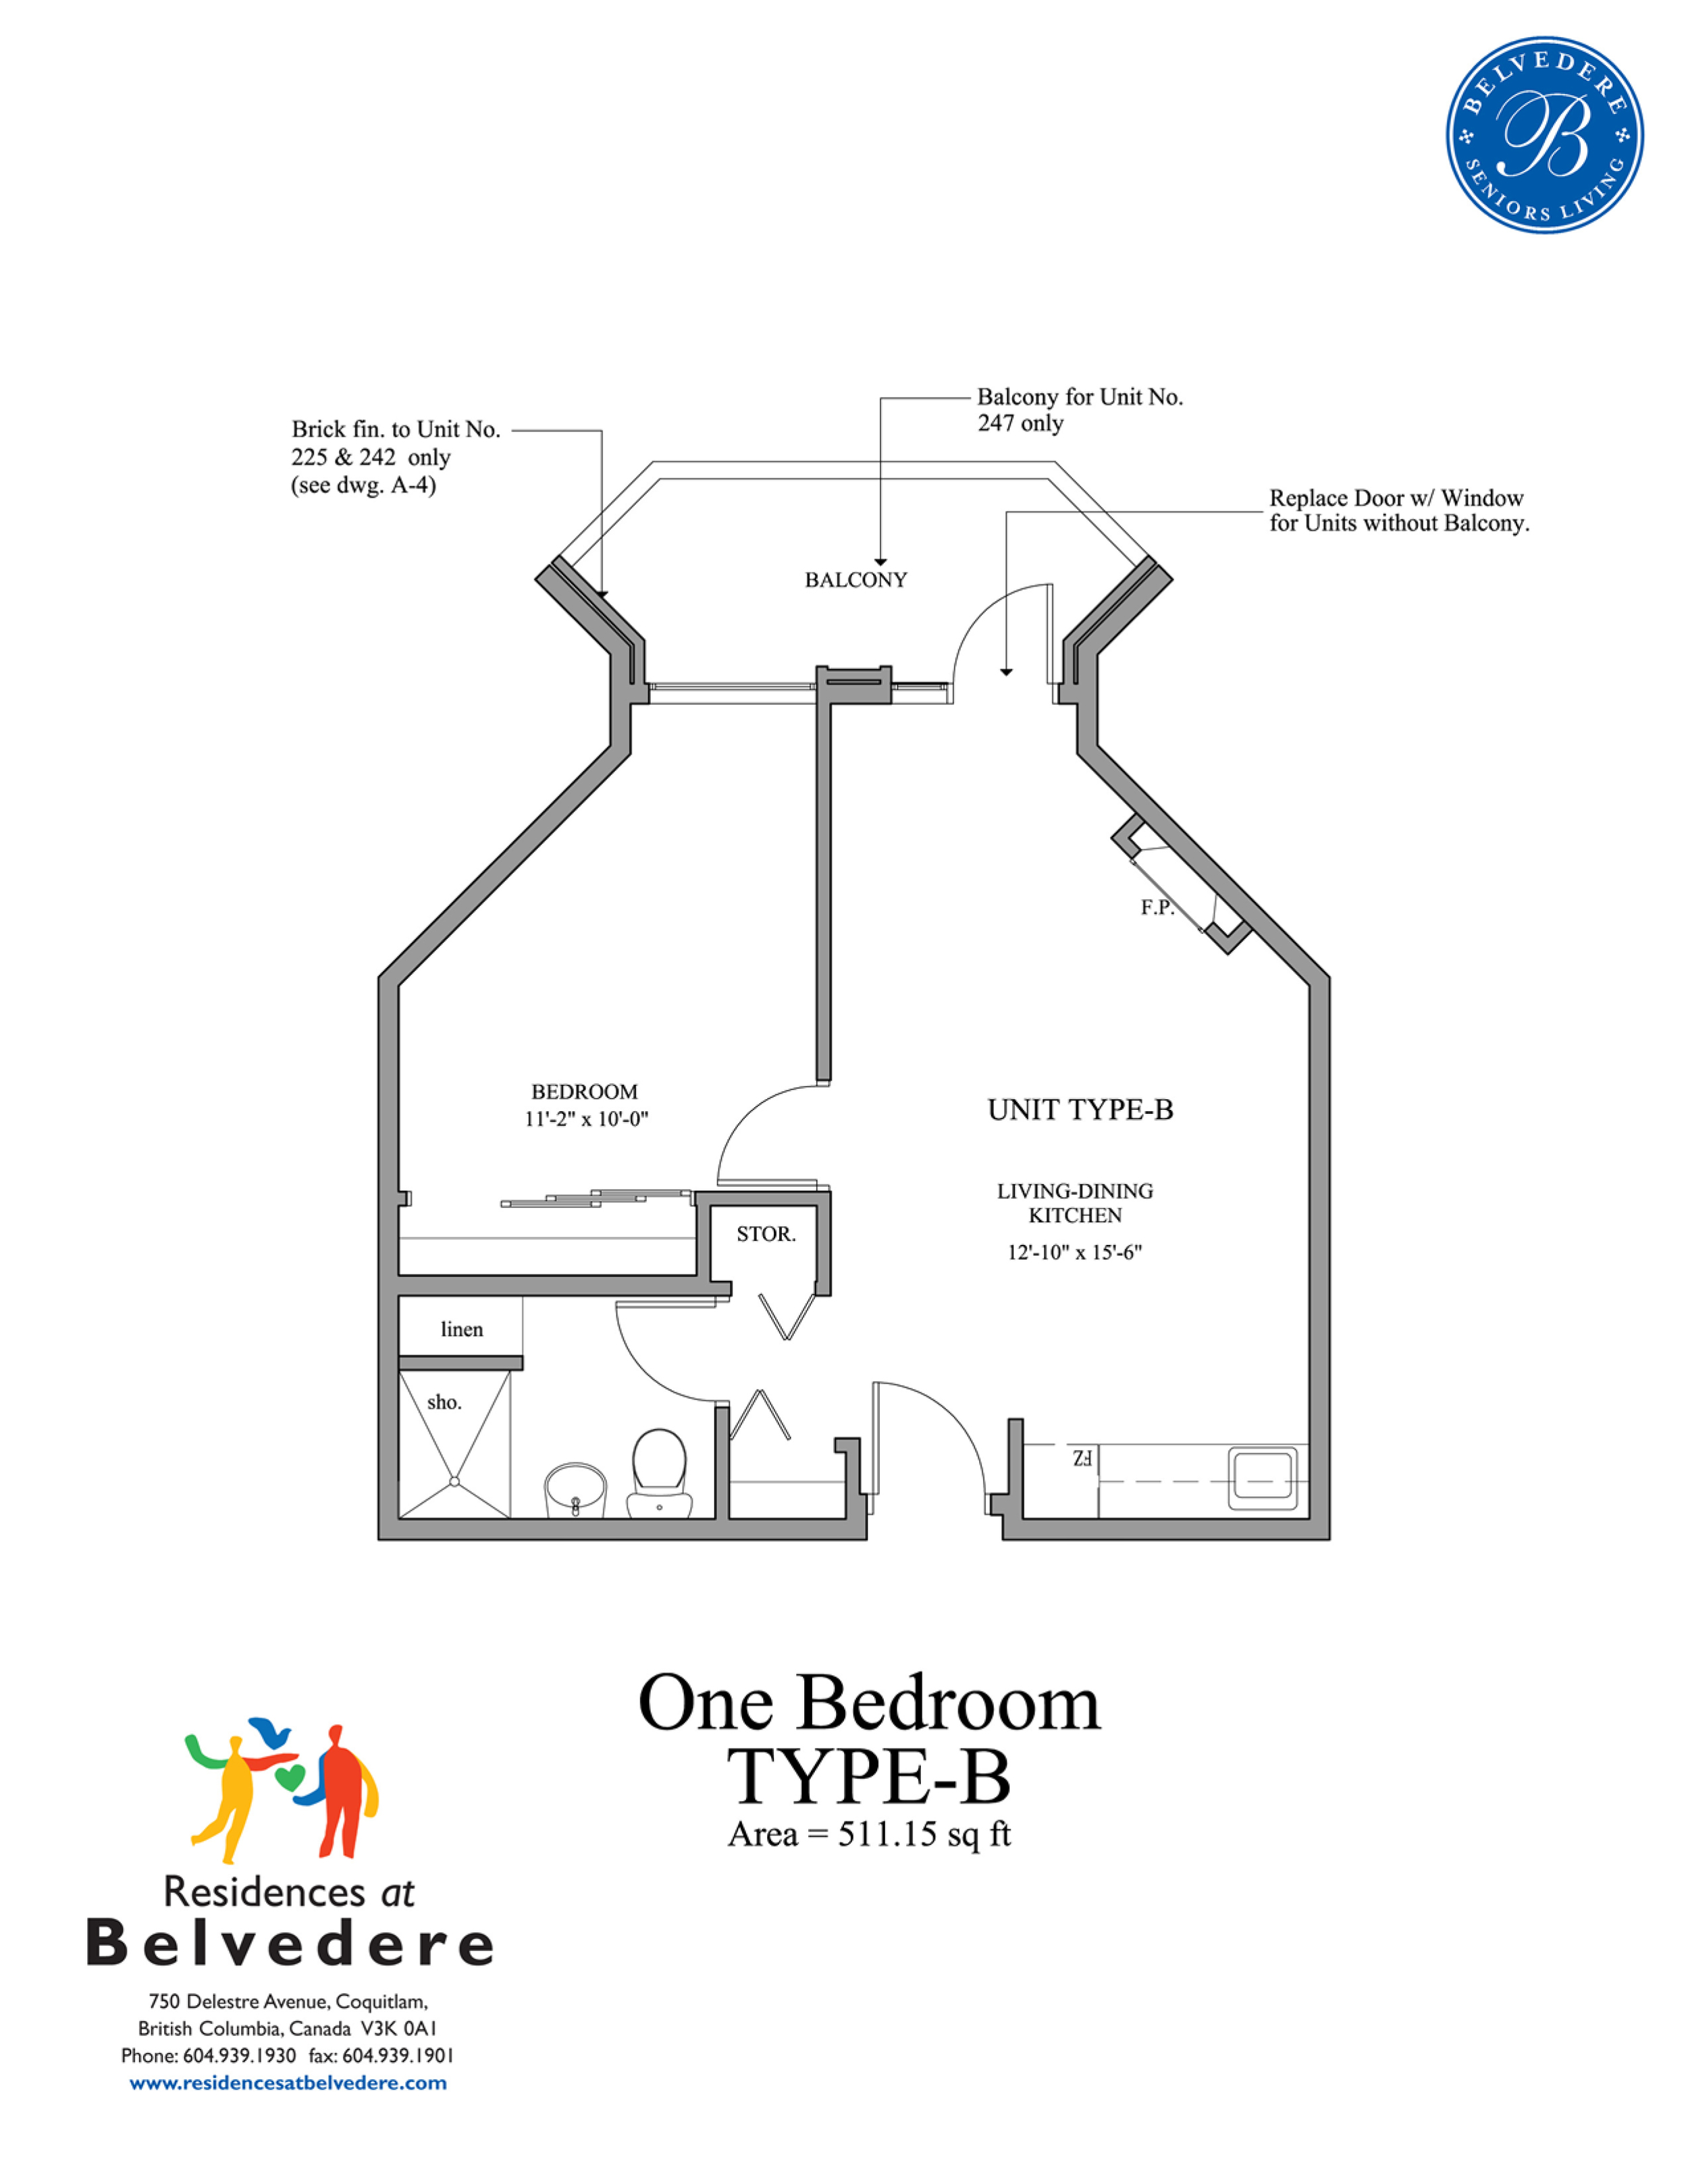 One Bedroom TYPE-B